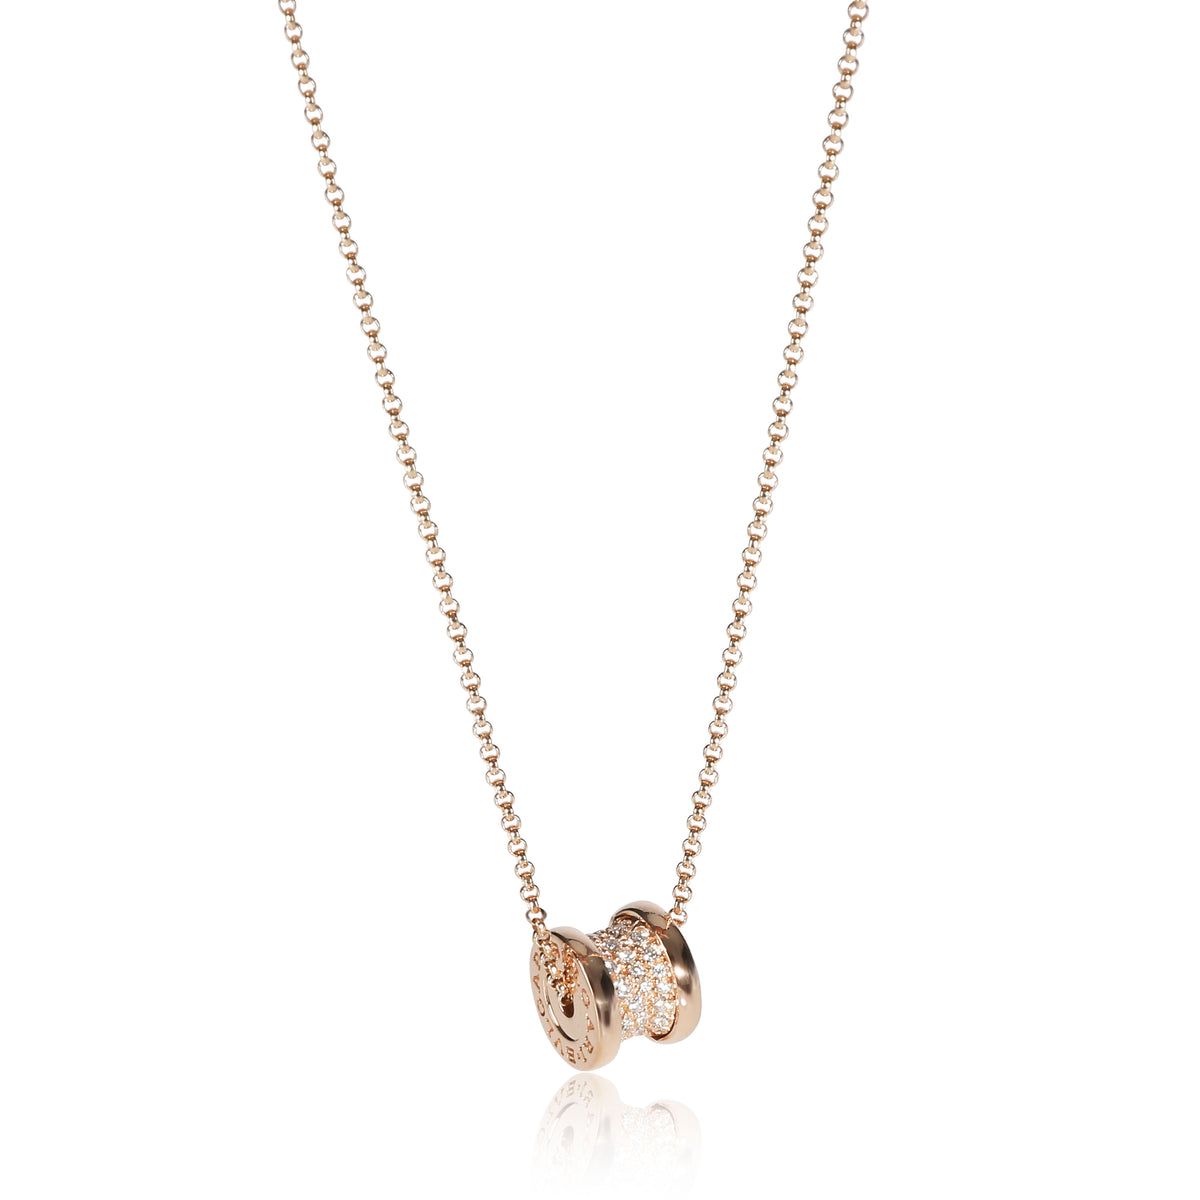 Bulgari B. Zero 1 Pave Diamond Necklace in 18K Rose Gold 0.31 CTW